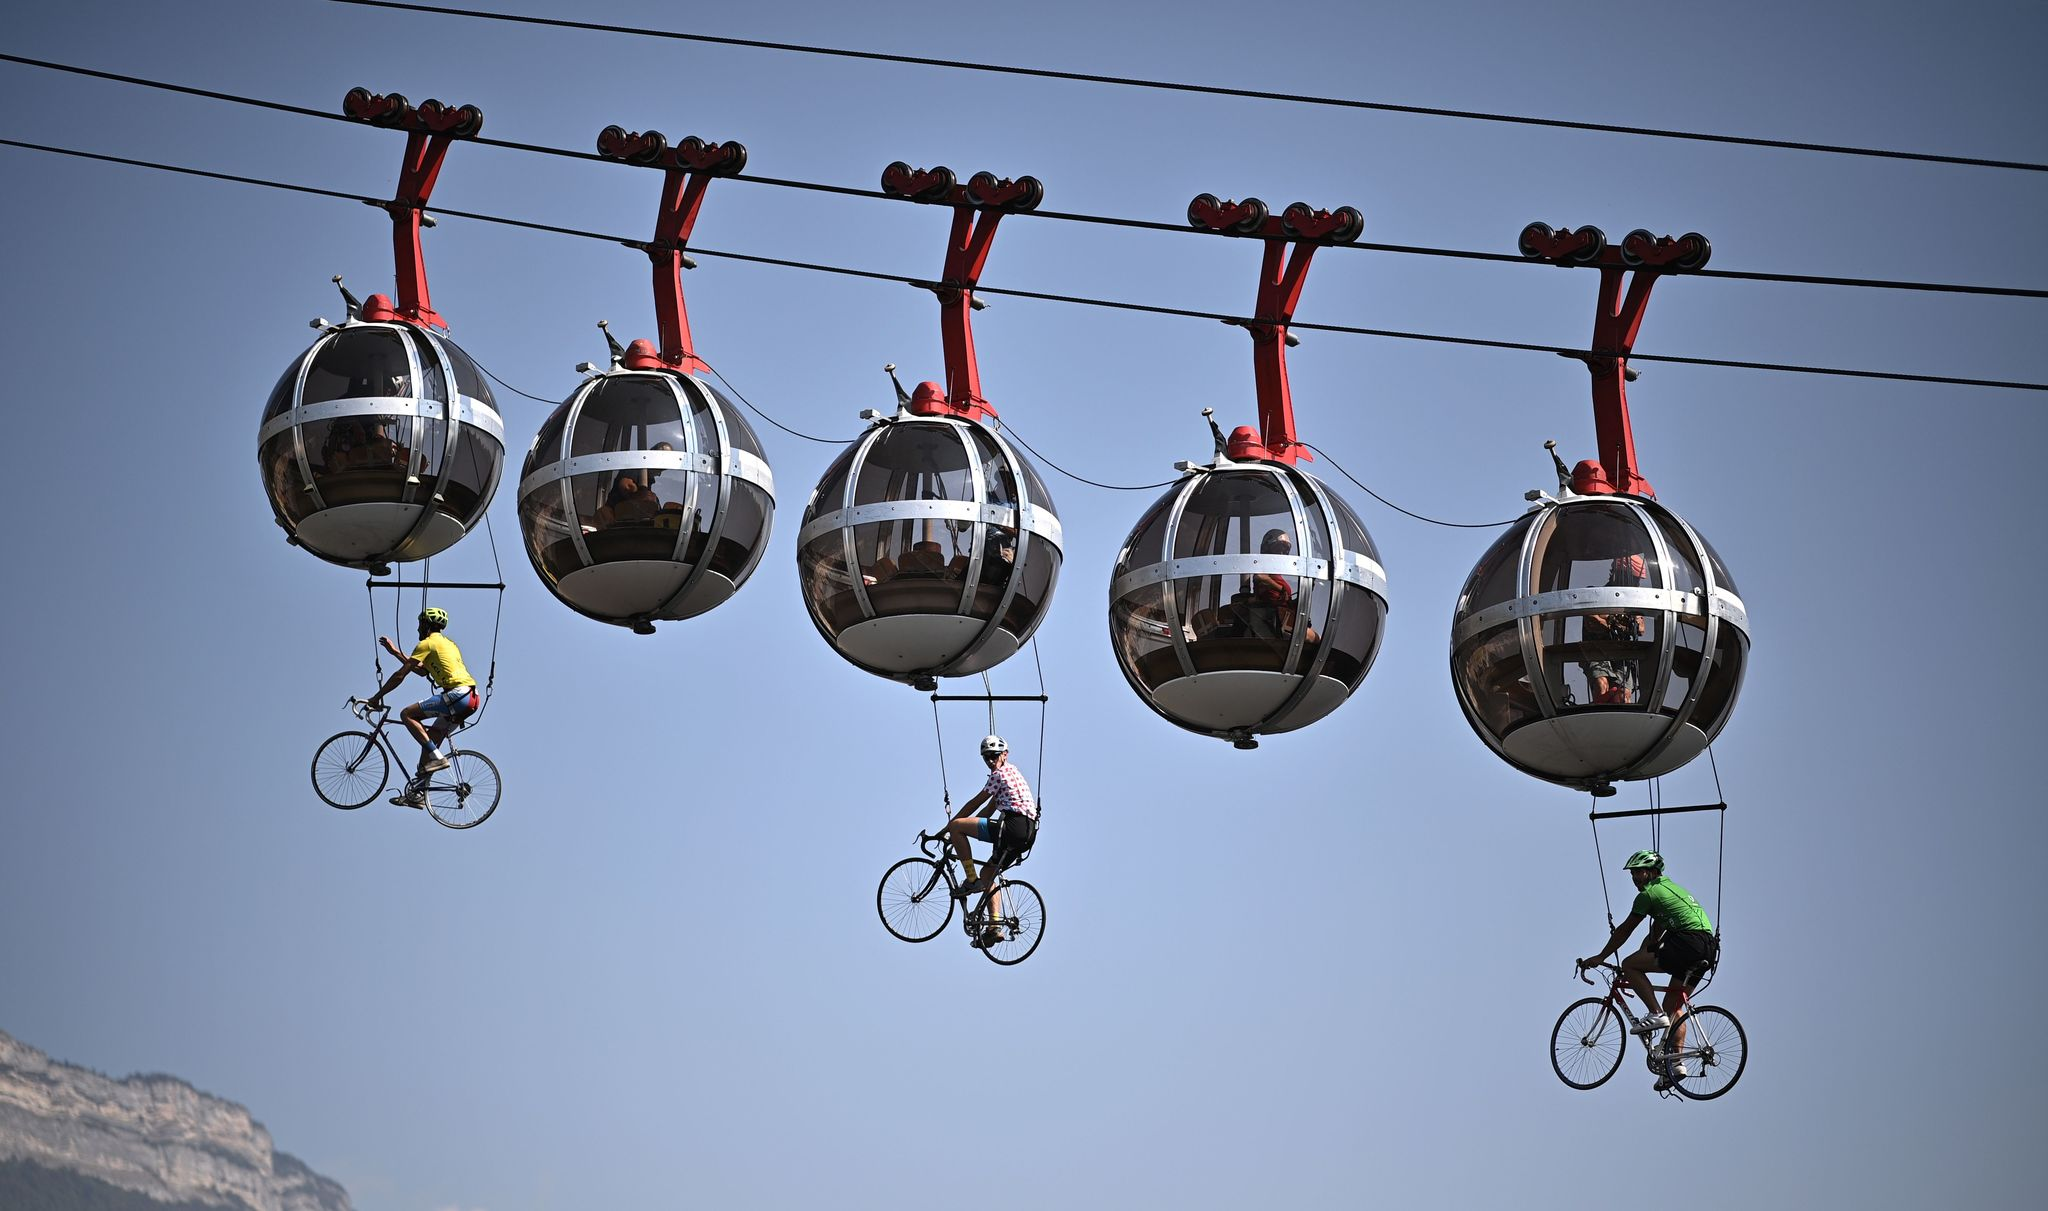 TOPSHOT - This picture shows cyclists hanging under the Grenoble Bastille cable cars during the 17th stage of the 107th edition of the lt;HIT gt;Tour lt;/HIT gt; de France cycling race, 170 km between Grenoble and Meribel, on September 16, 2020. (Photo by Anne-Christine POUJOULAT / AFP)